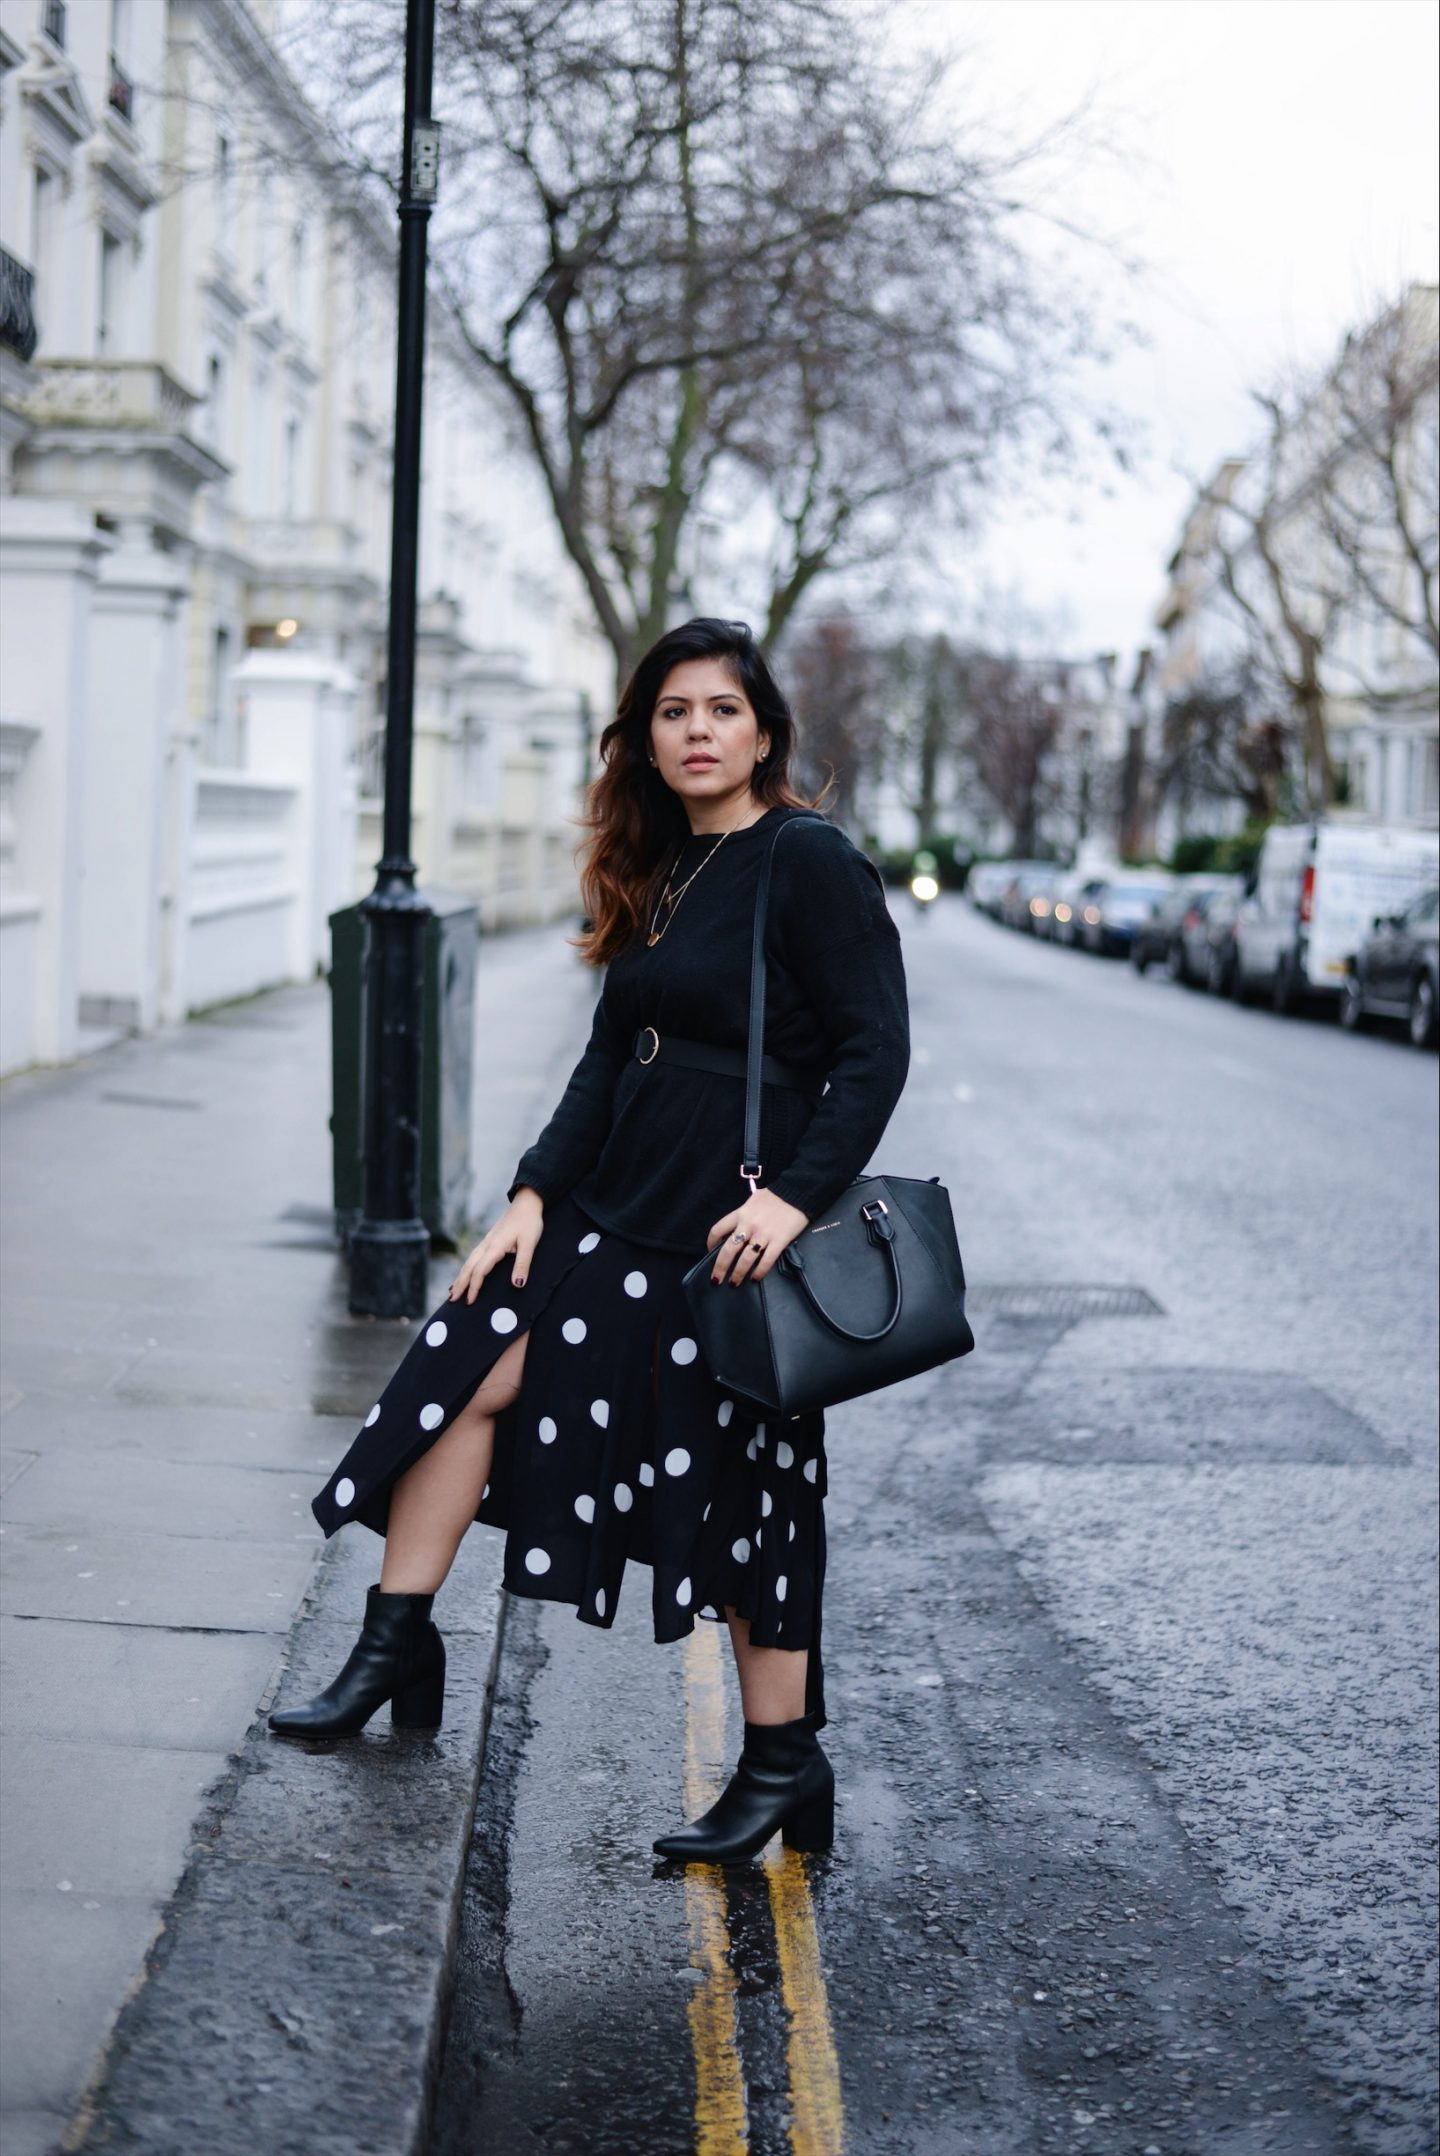 polka dot dress london fashion blogger